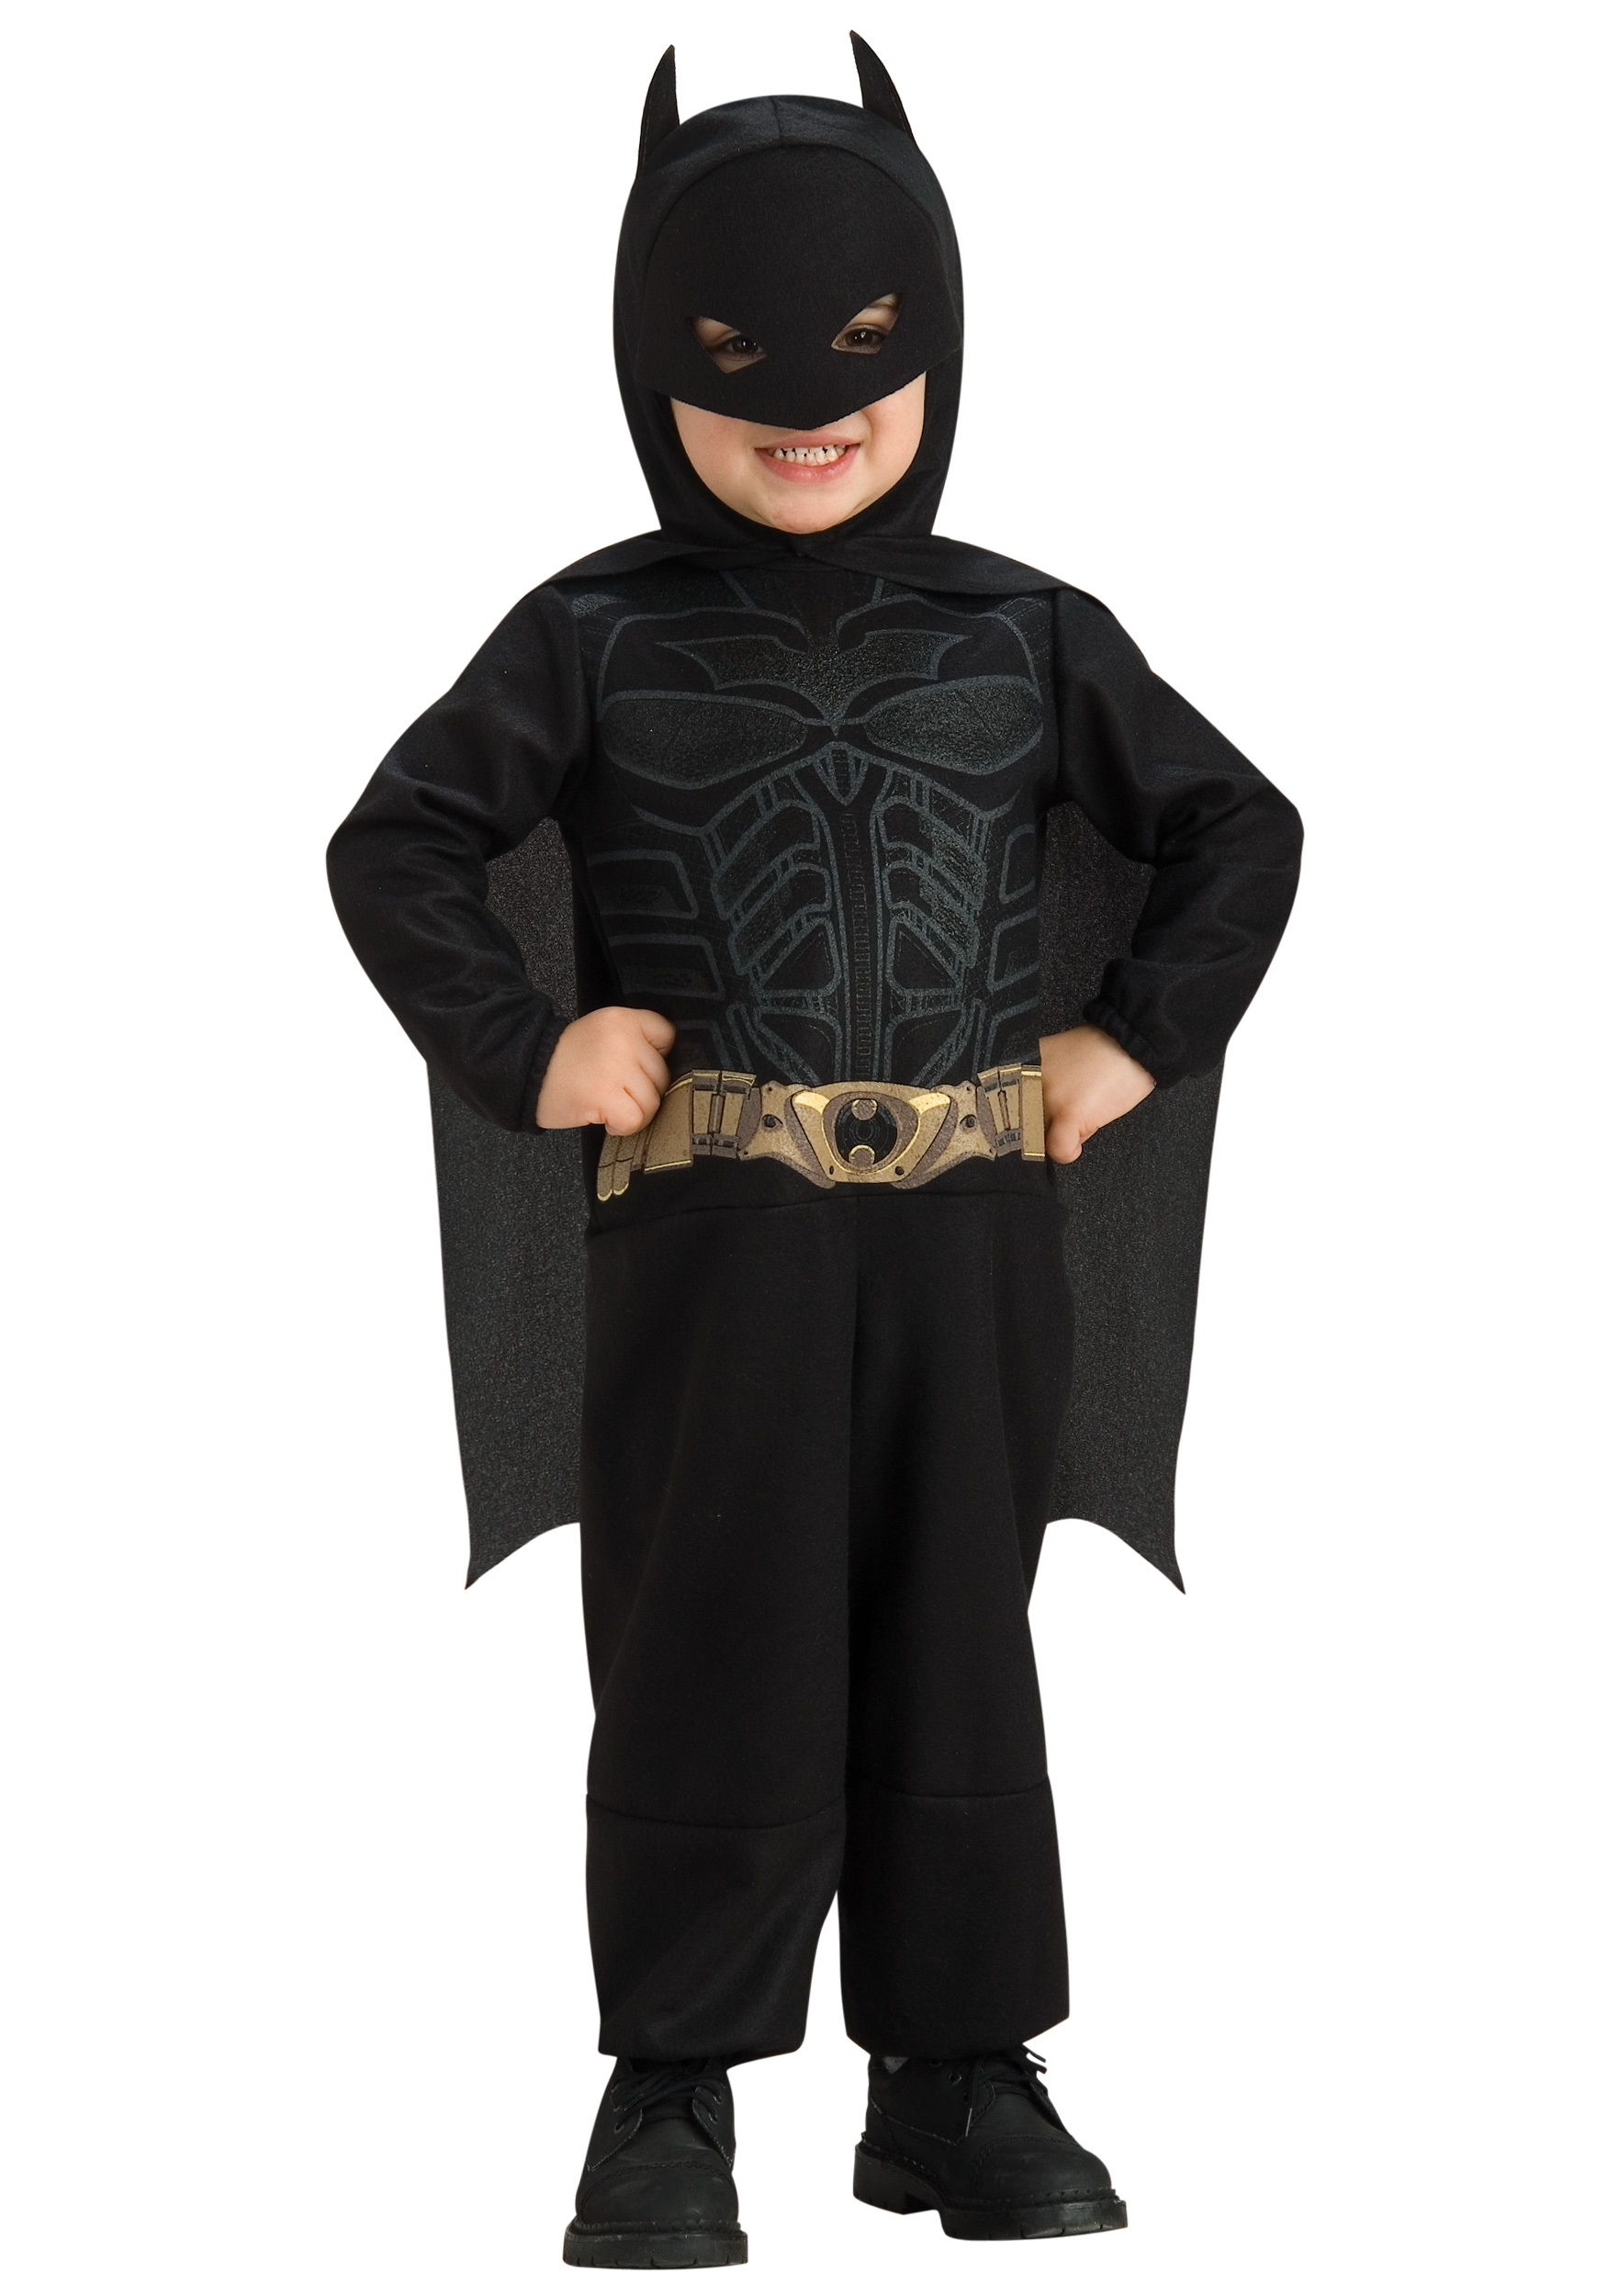 sc 1 st  Halloween Costumes & Toddler Dark Knight Rises Batman Costume